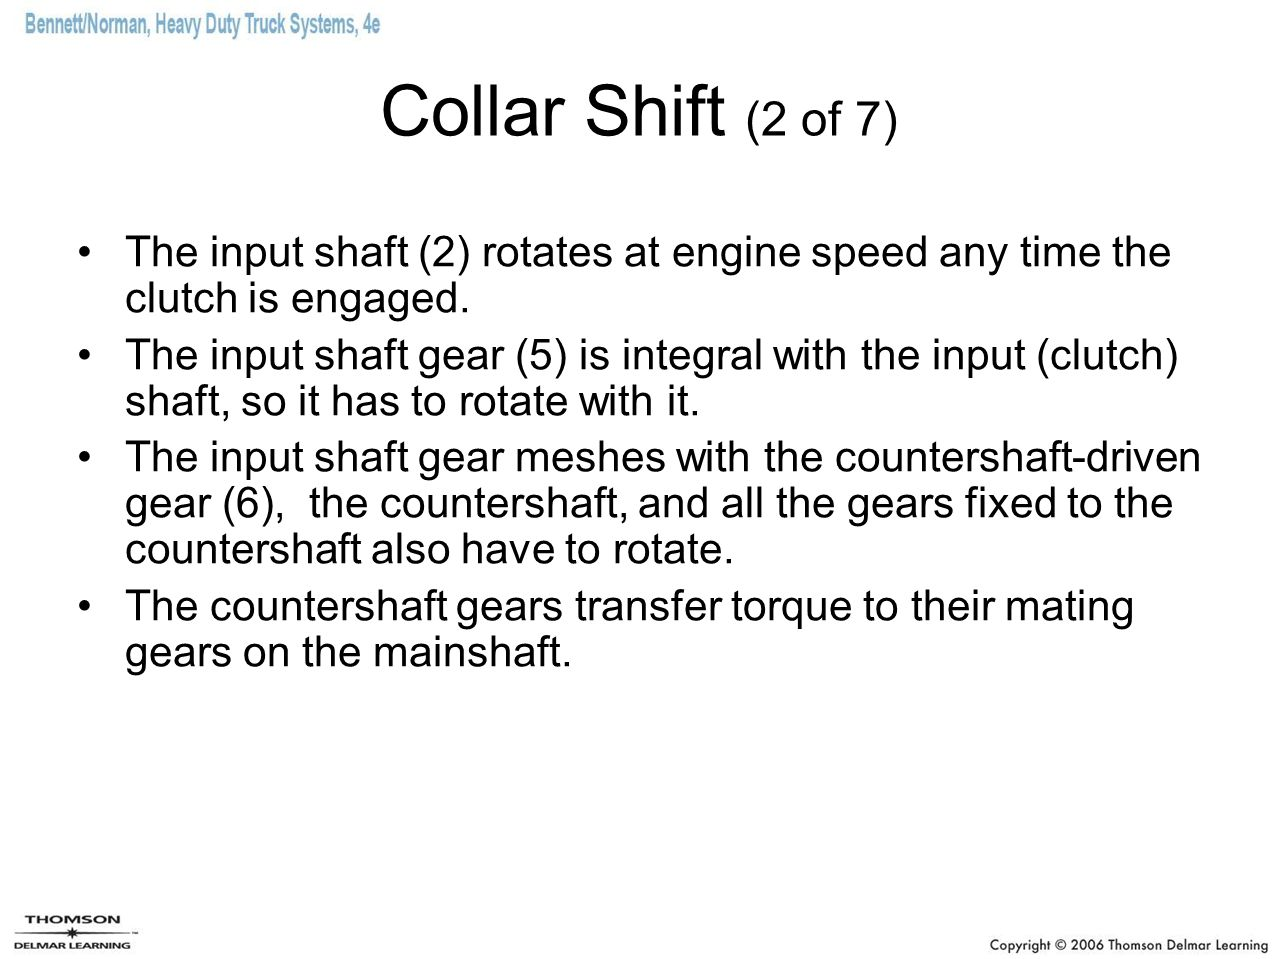 Collar Shift (2 of 7) The input shaft (2) rotates at engine speed any time the clutch is engaged.